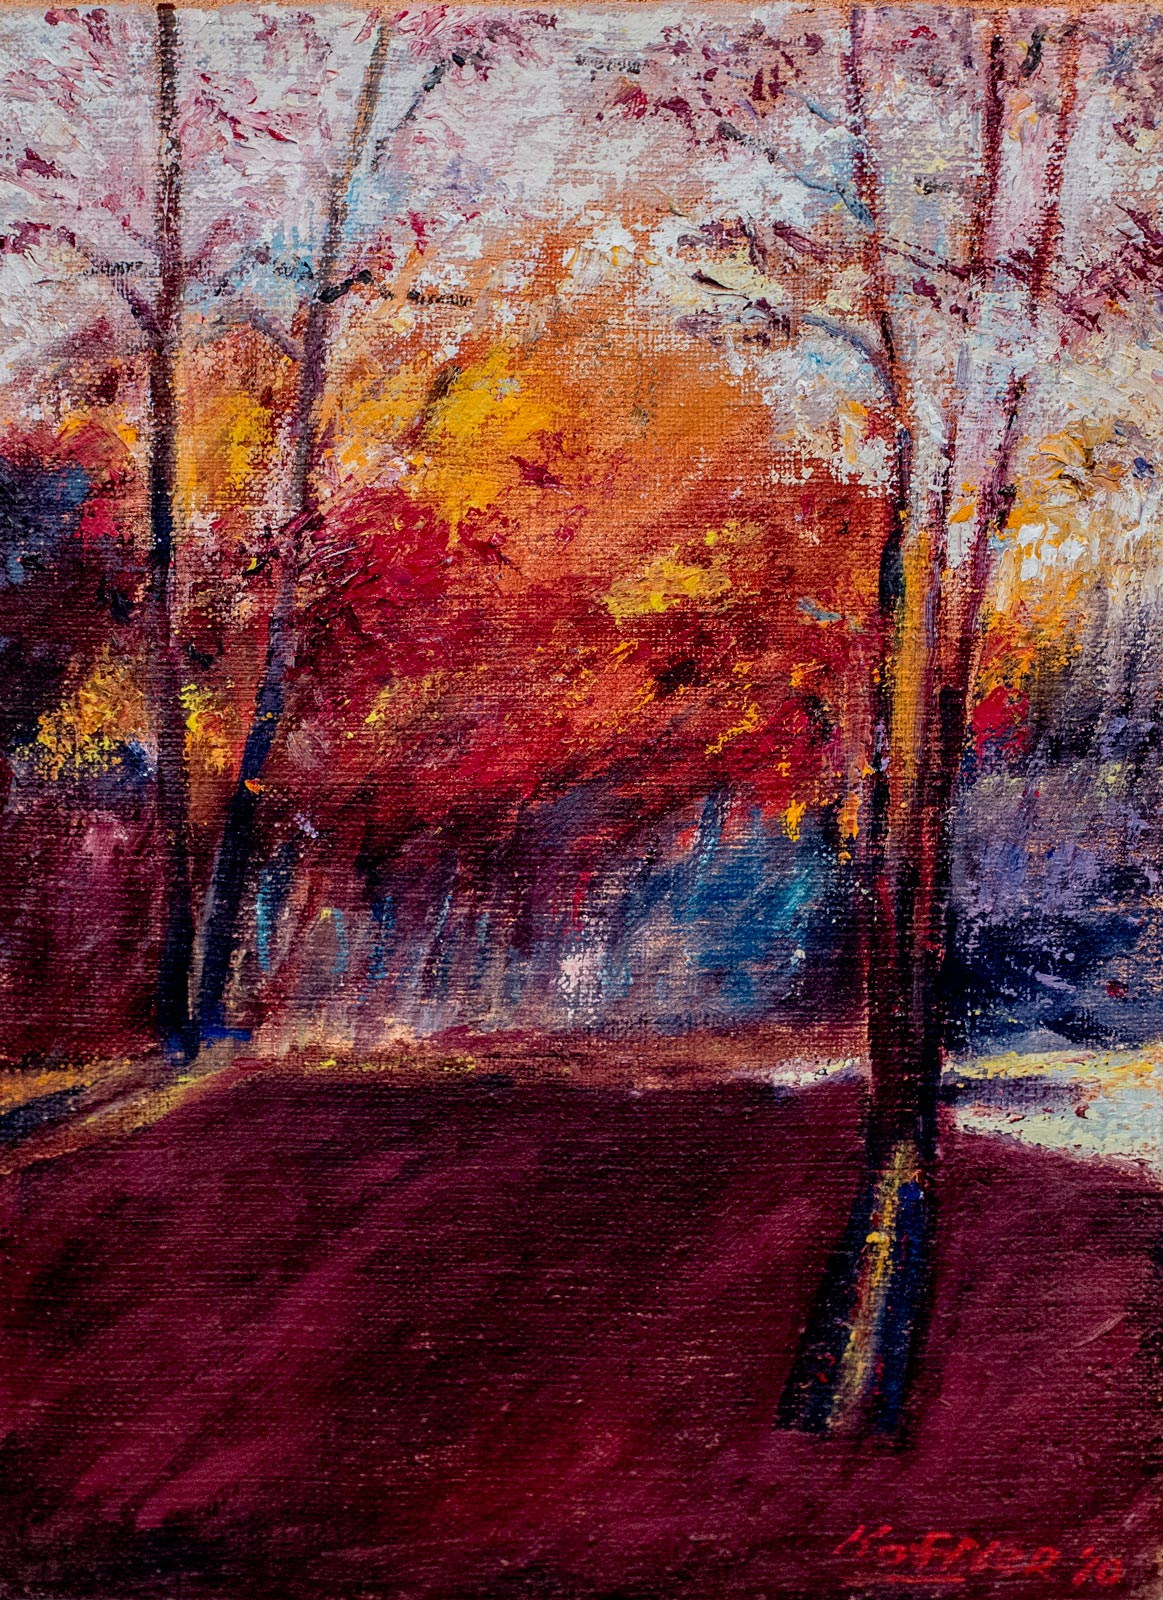 Robert-Steven-Koffler---Art-Catalog_Through_the_Autumn_trees_2010_12x9